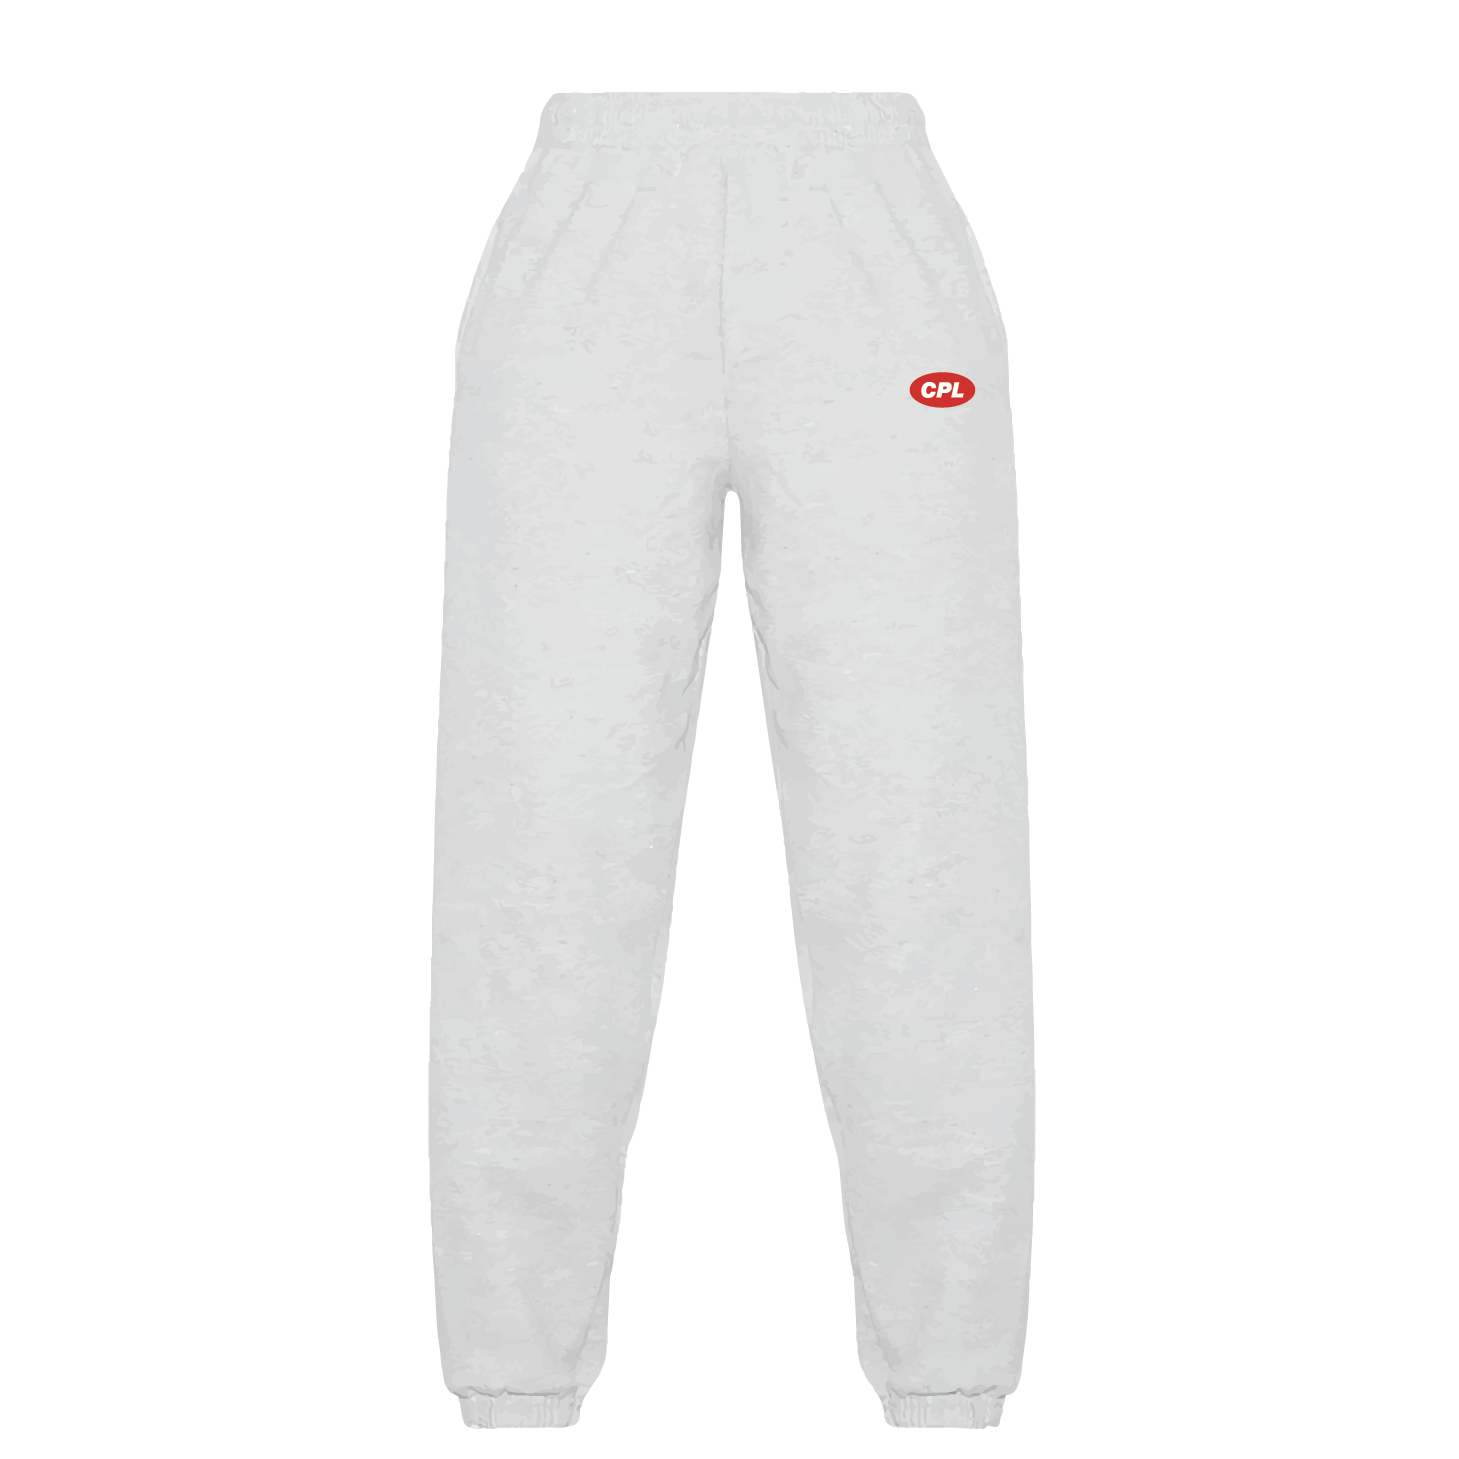 CPL Sweatpants